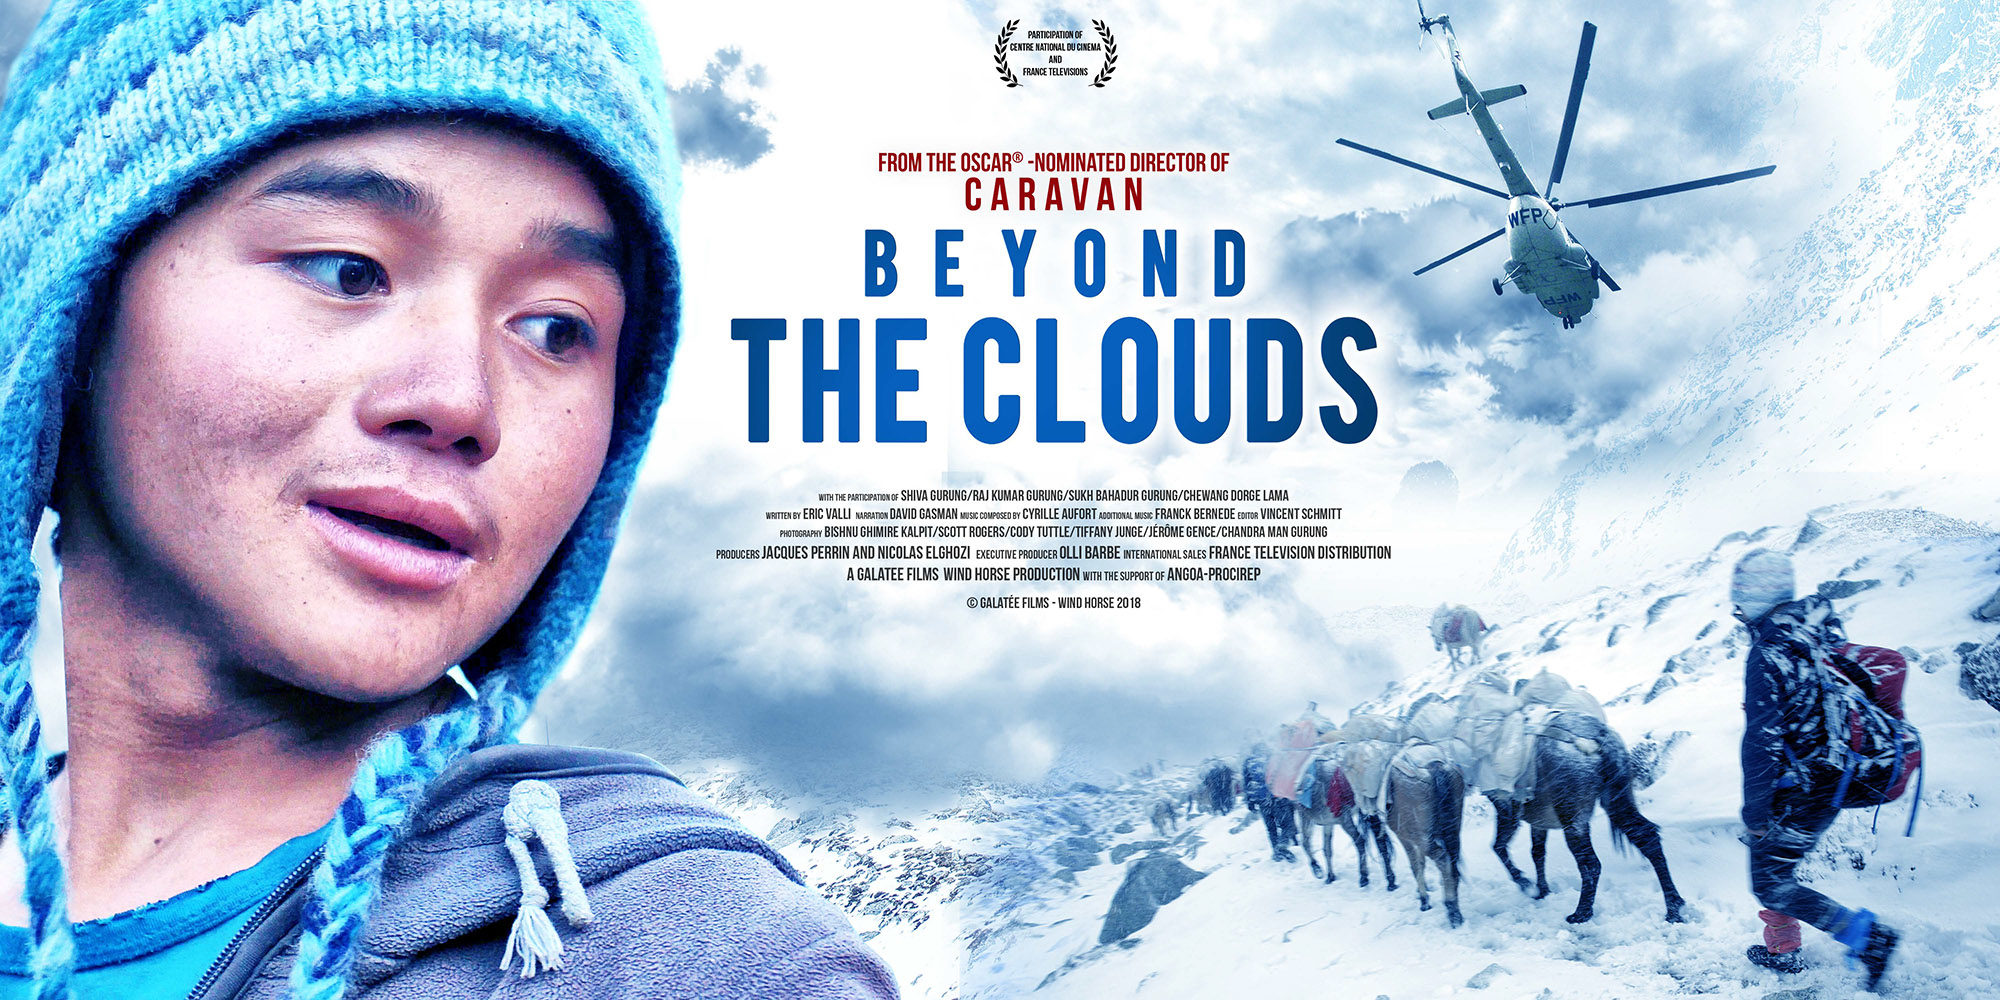 Film Review BEYOND THE CLOUDS : A Wandering Visual Treat